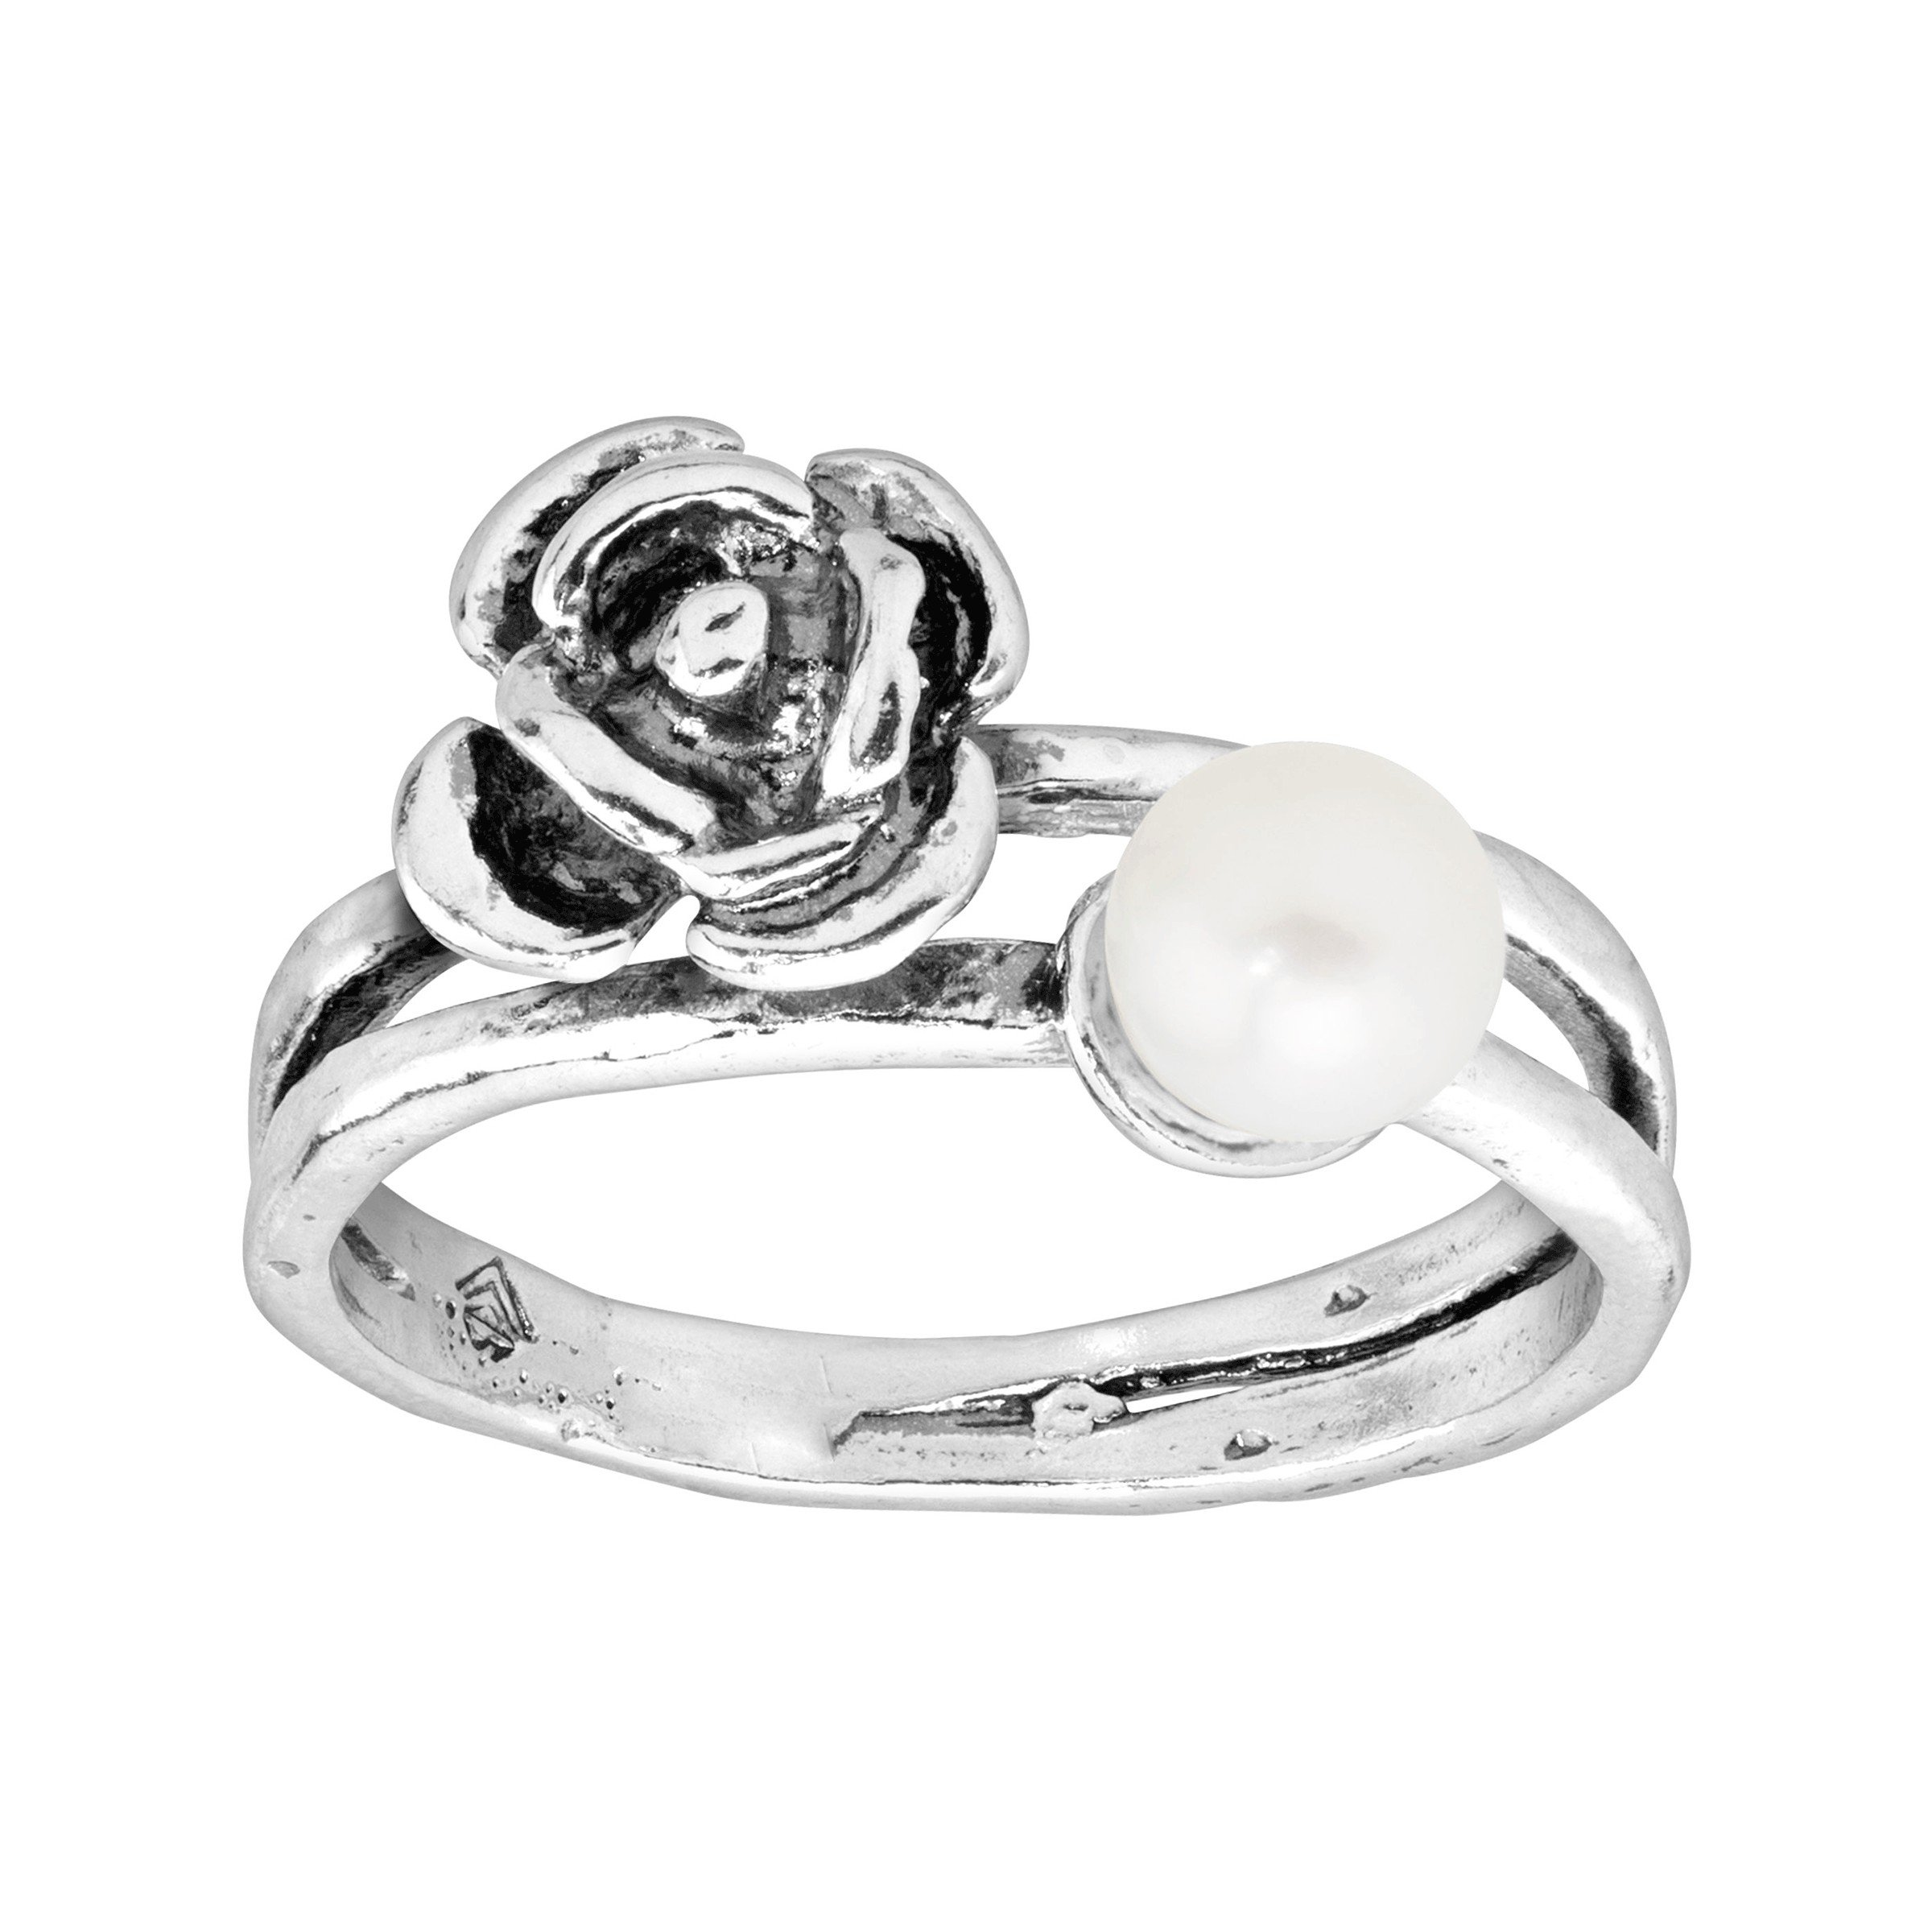 Silpada 'Le Fleur' 5-5.5 mm Freshwater Cultured Pearl Ring in Sterling Silver Size 8